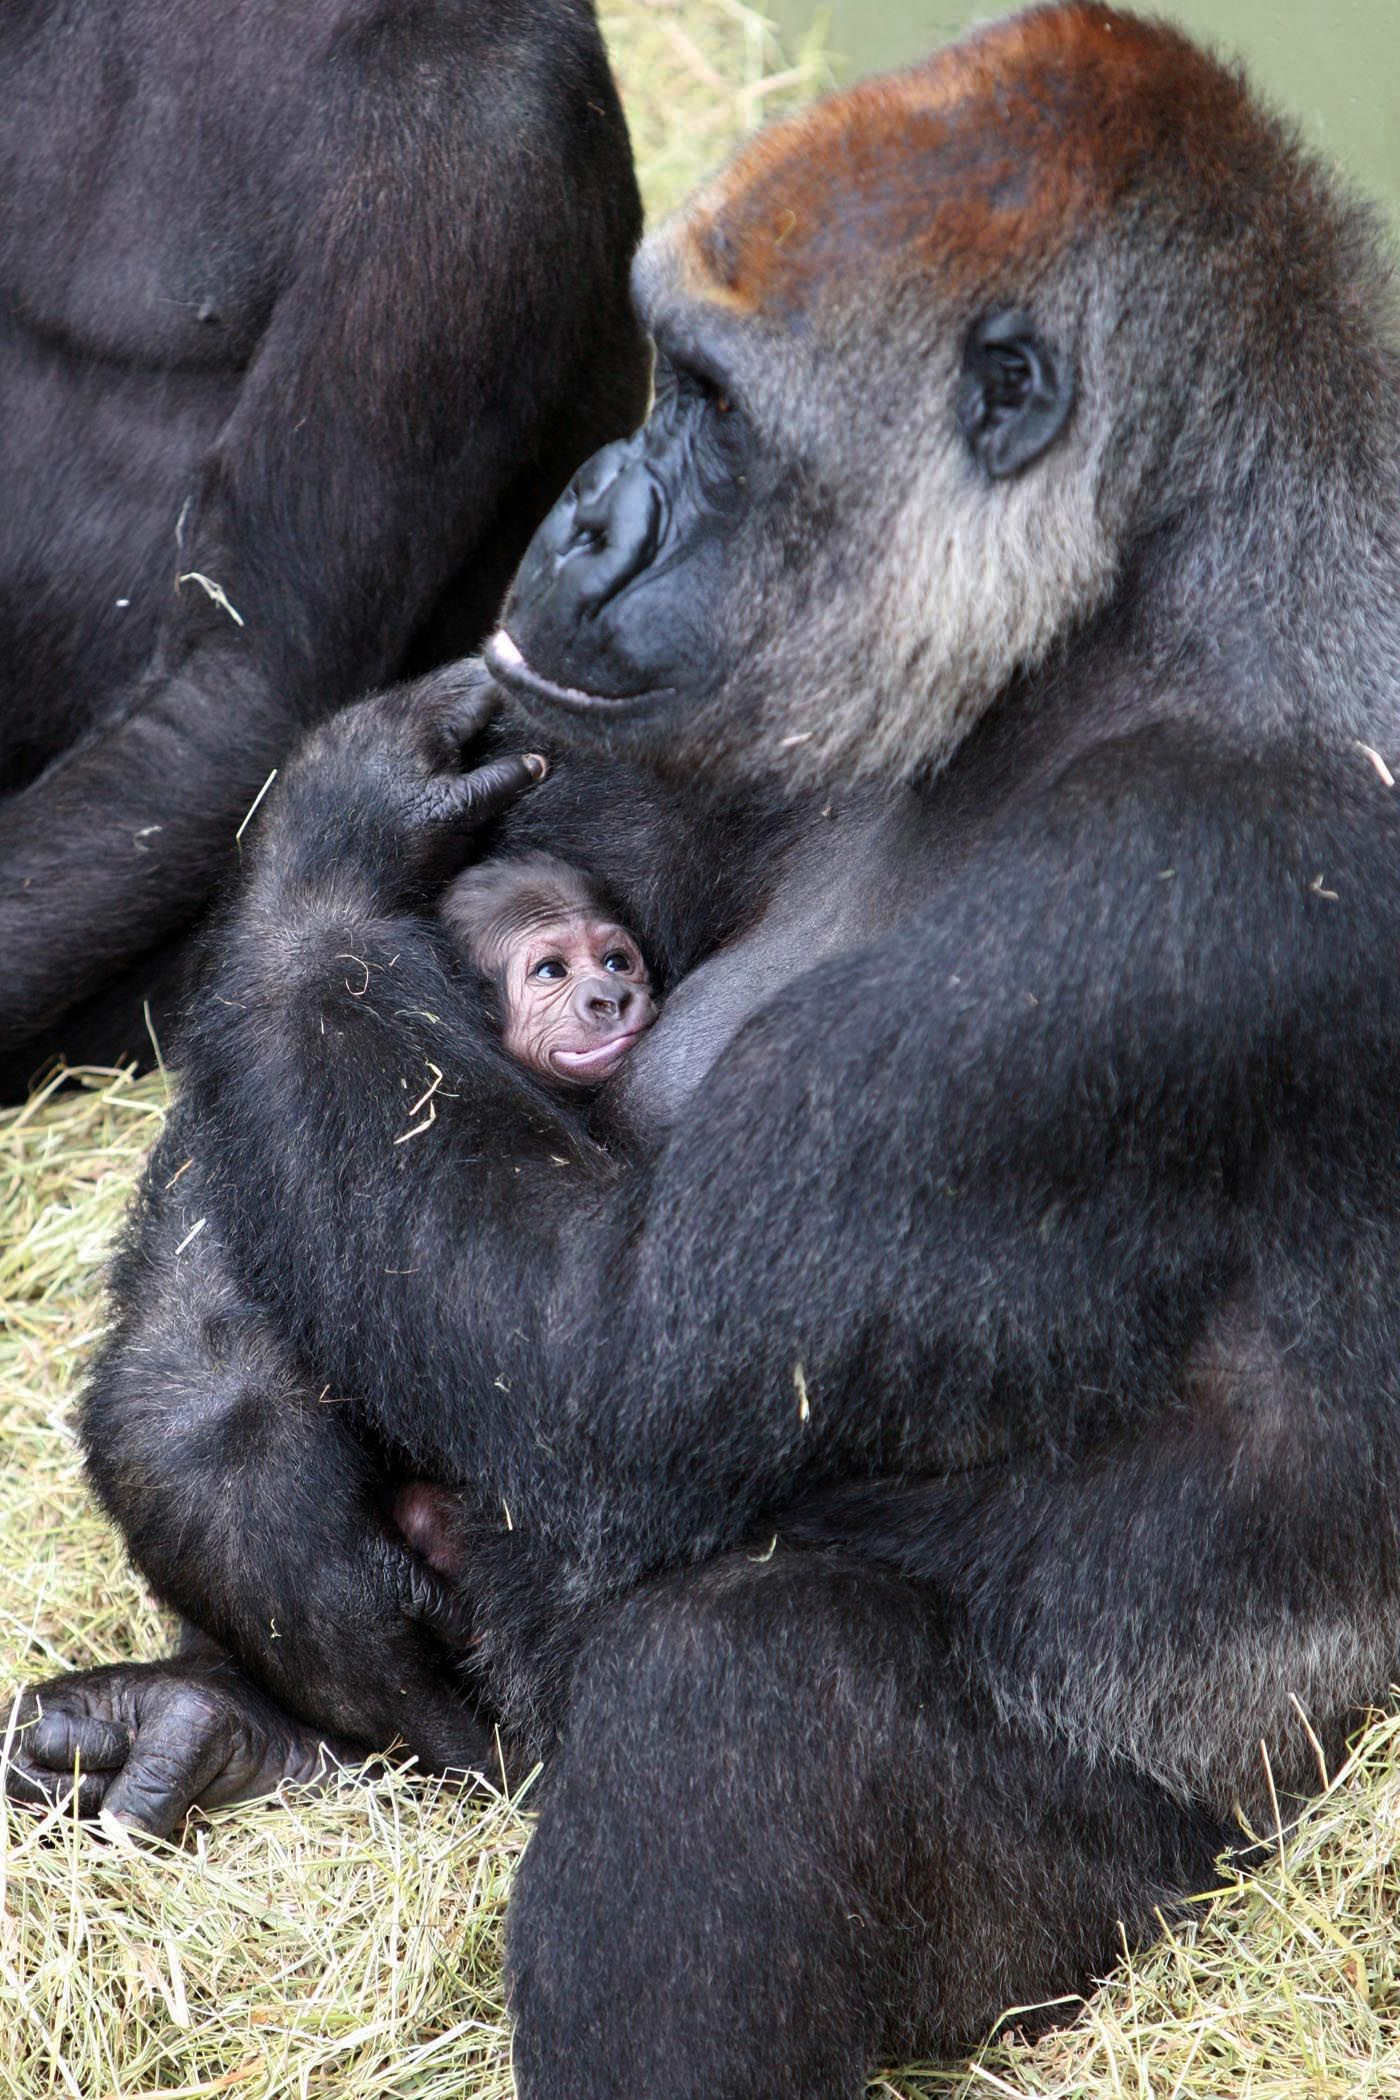 Www Bing Com1 Microsoft Way Redmond: New Mom Lana With Her Baby At Dublin Zoo In Ireland